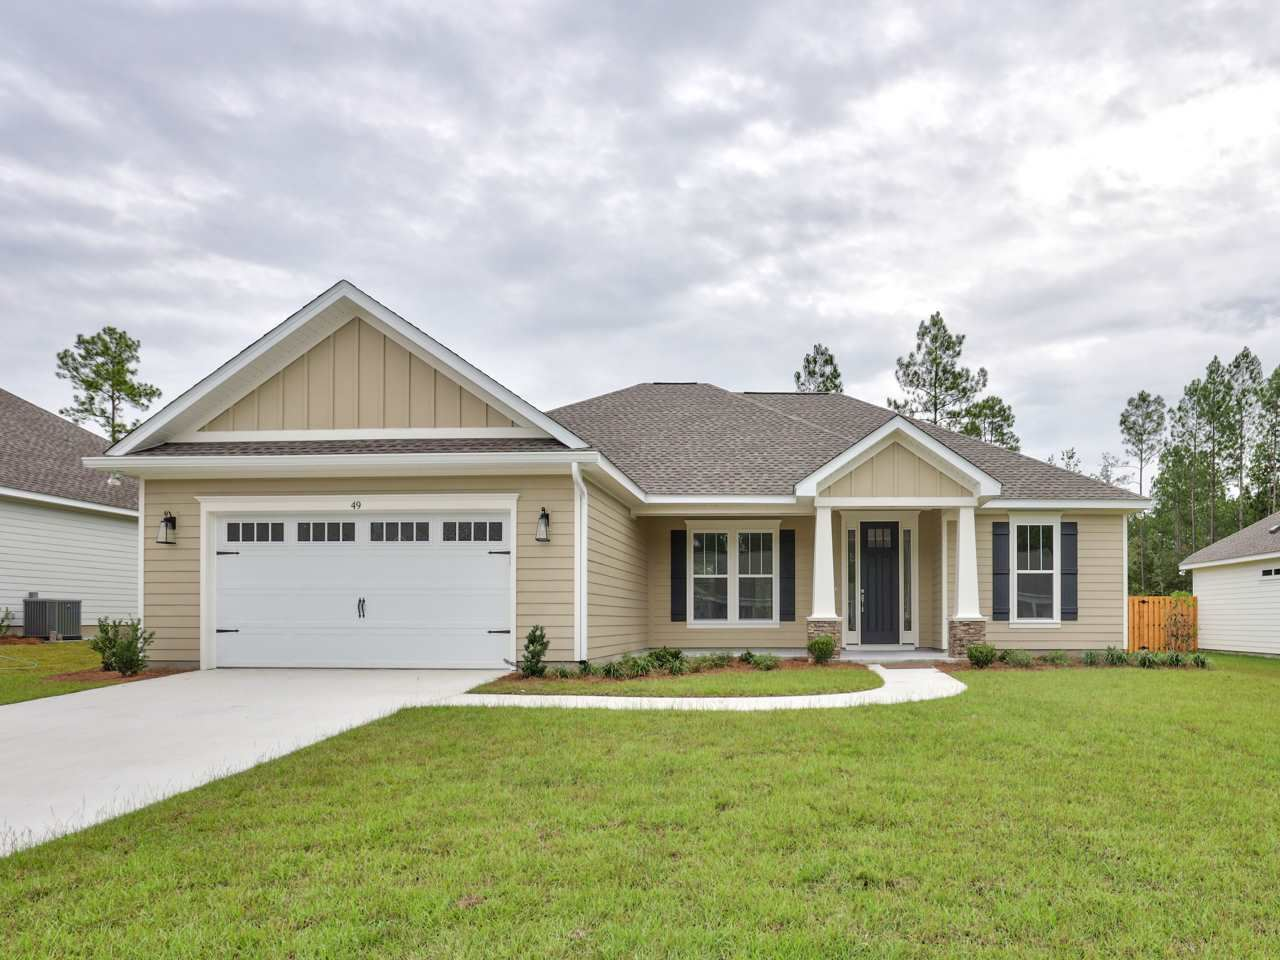 38 London Circle, Crawfordville, FL 32327 - MLS#: 323278